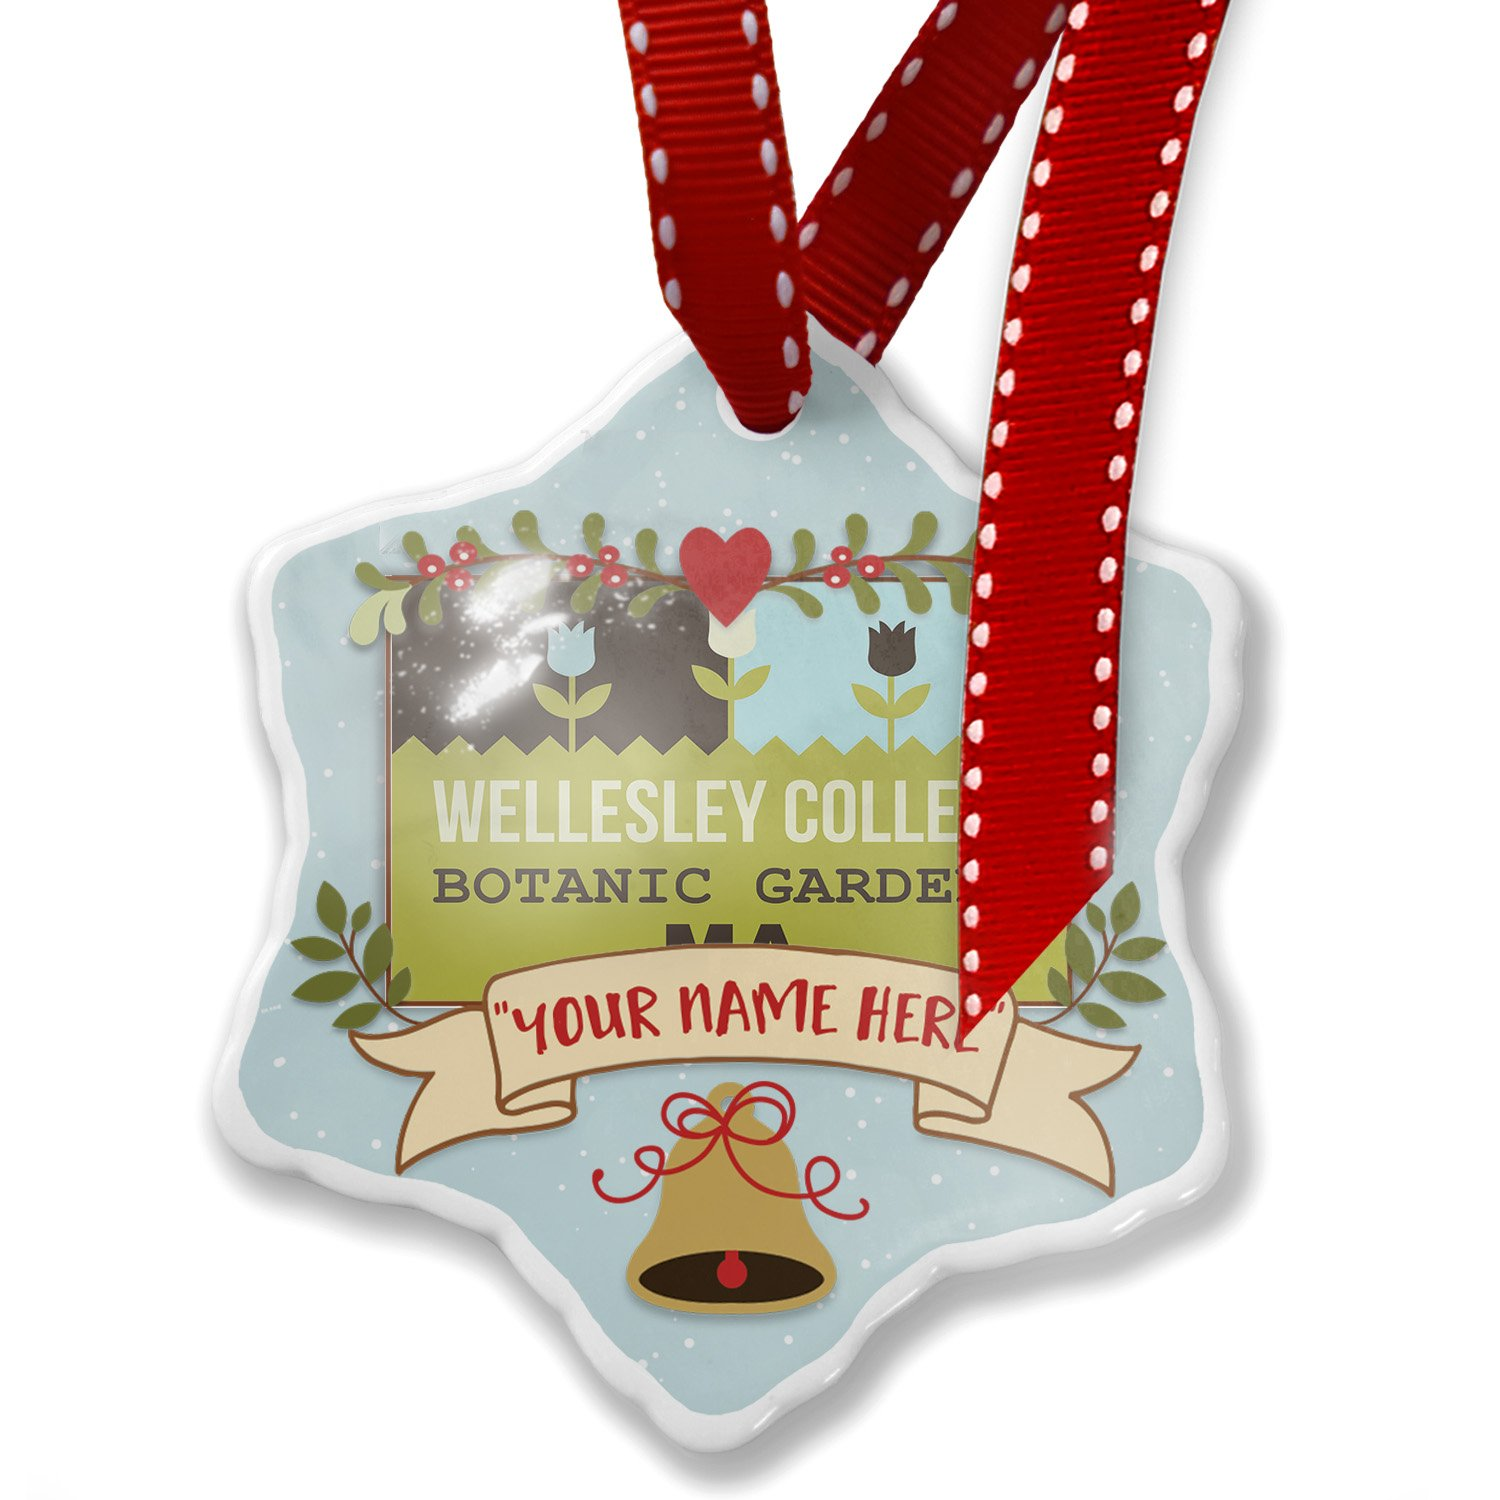 Add Your Own Custom Name, US Gardens Wellesley College Botanic Gardens - MA Christmas Ornament NEONBLOND